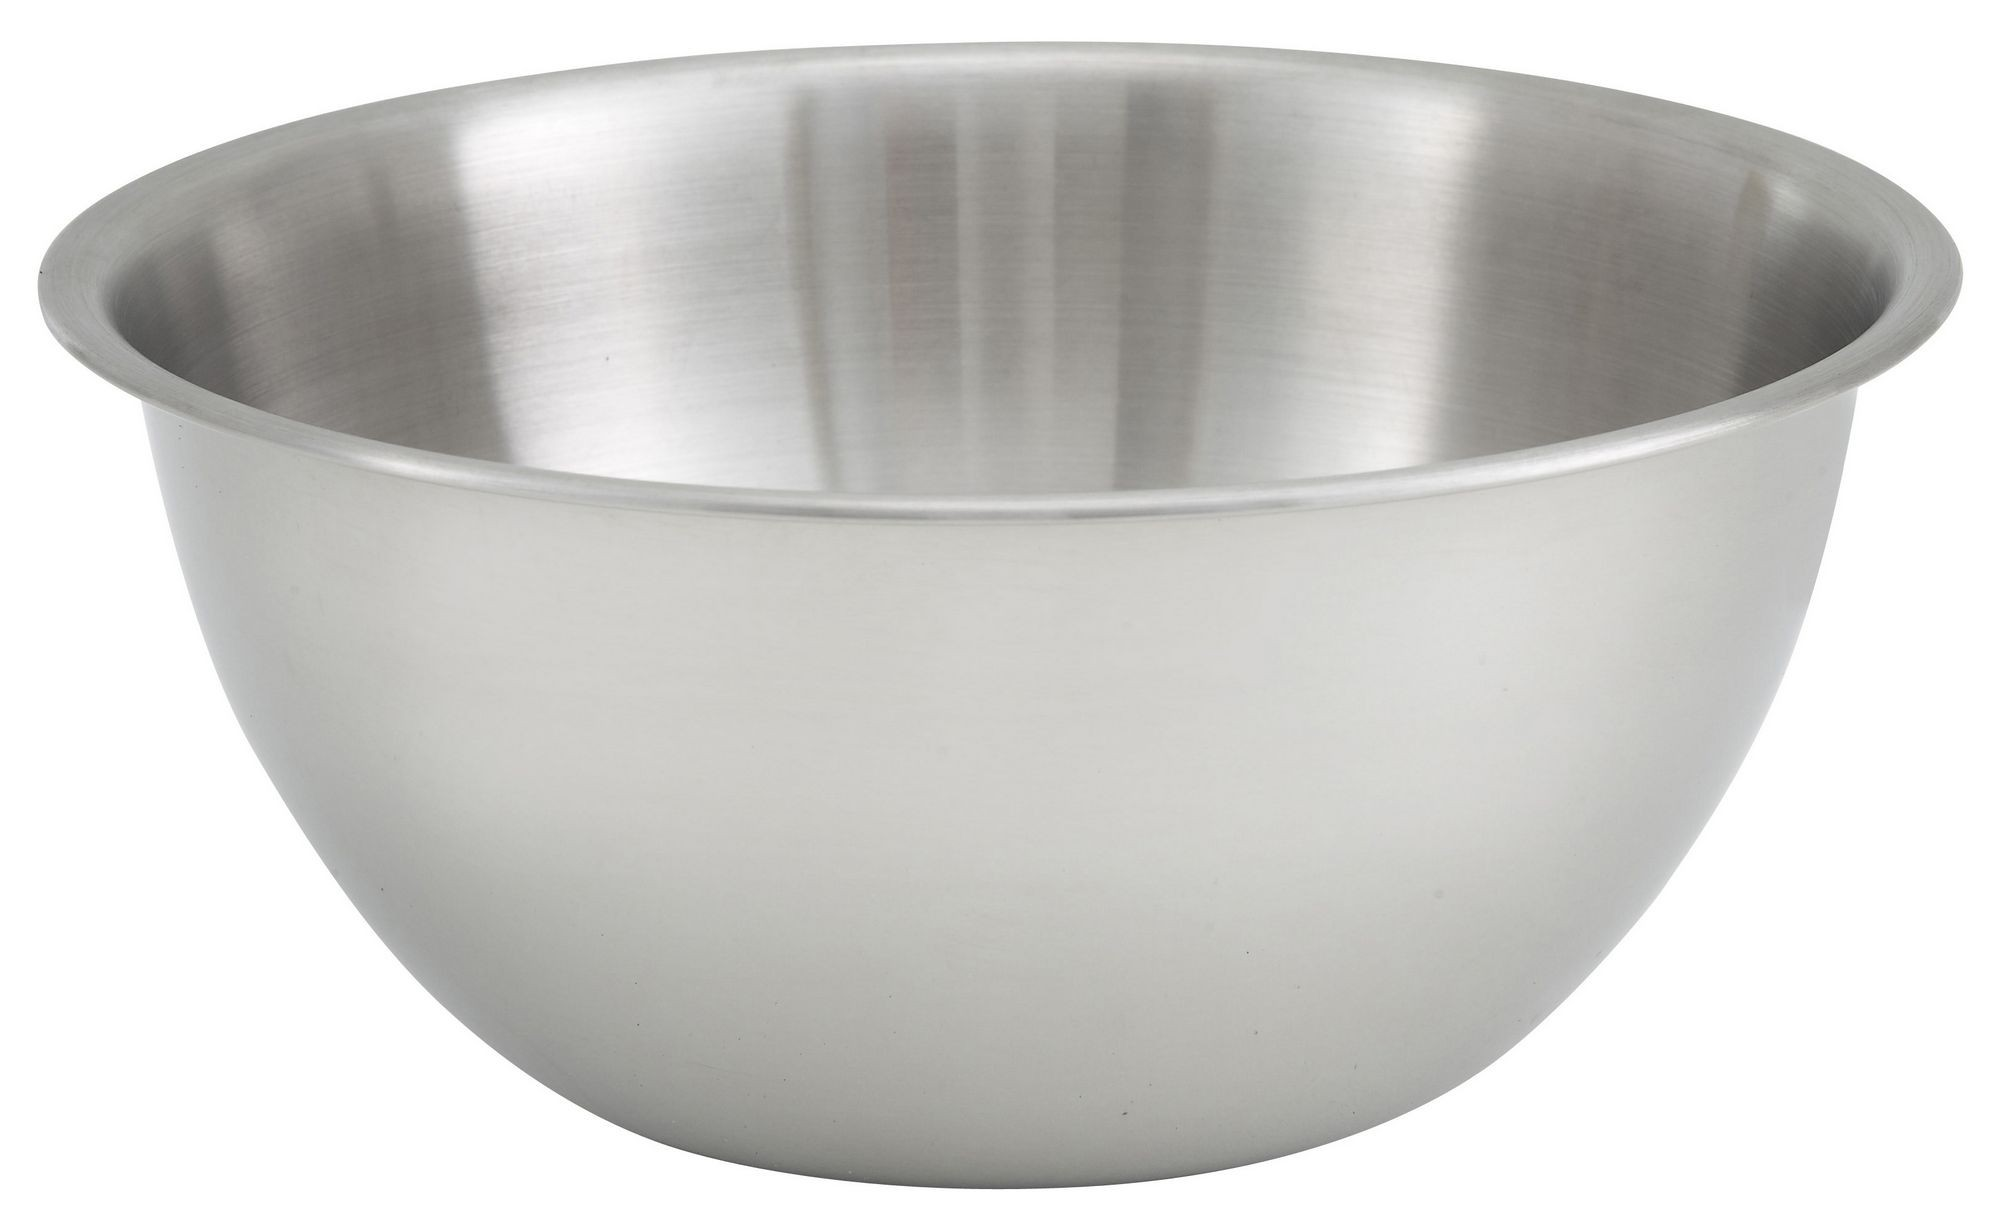 Winco MXBH-1300 Heavy Duty Stainless Steel 13 Qt. Mixing Bowl